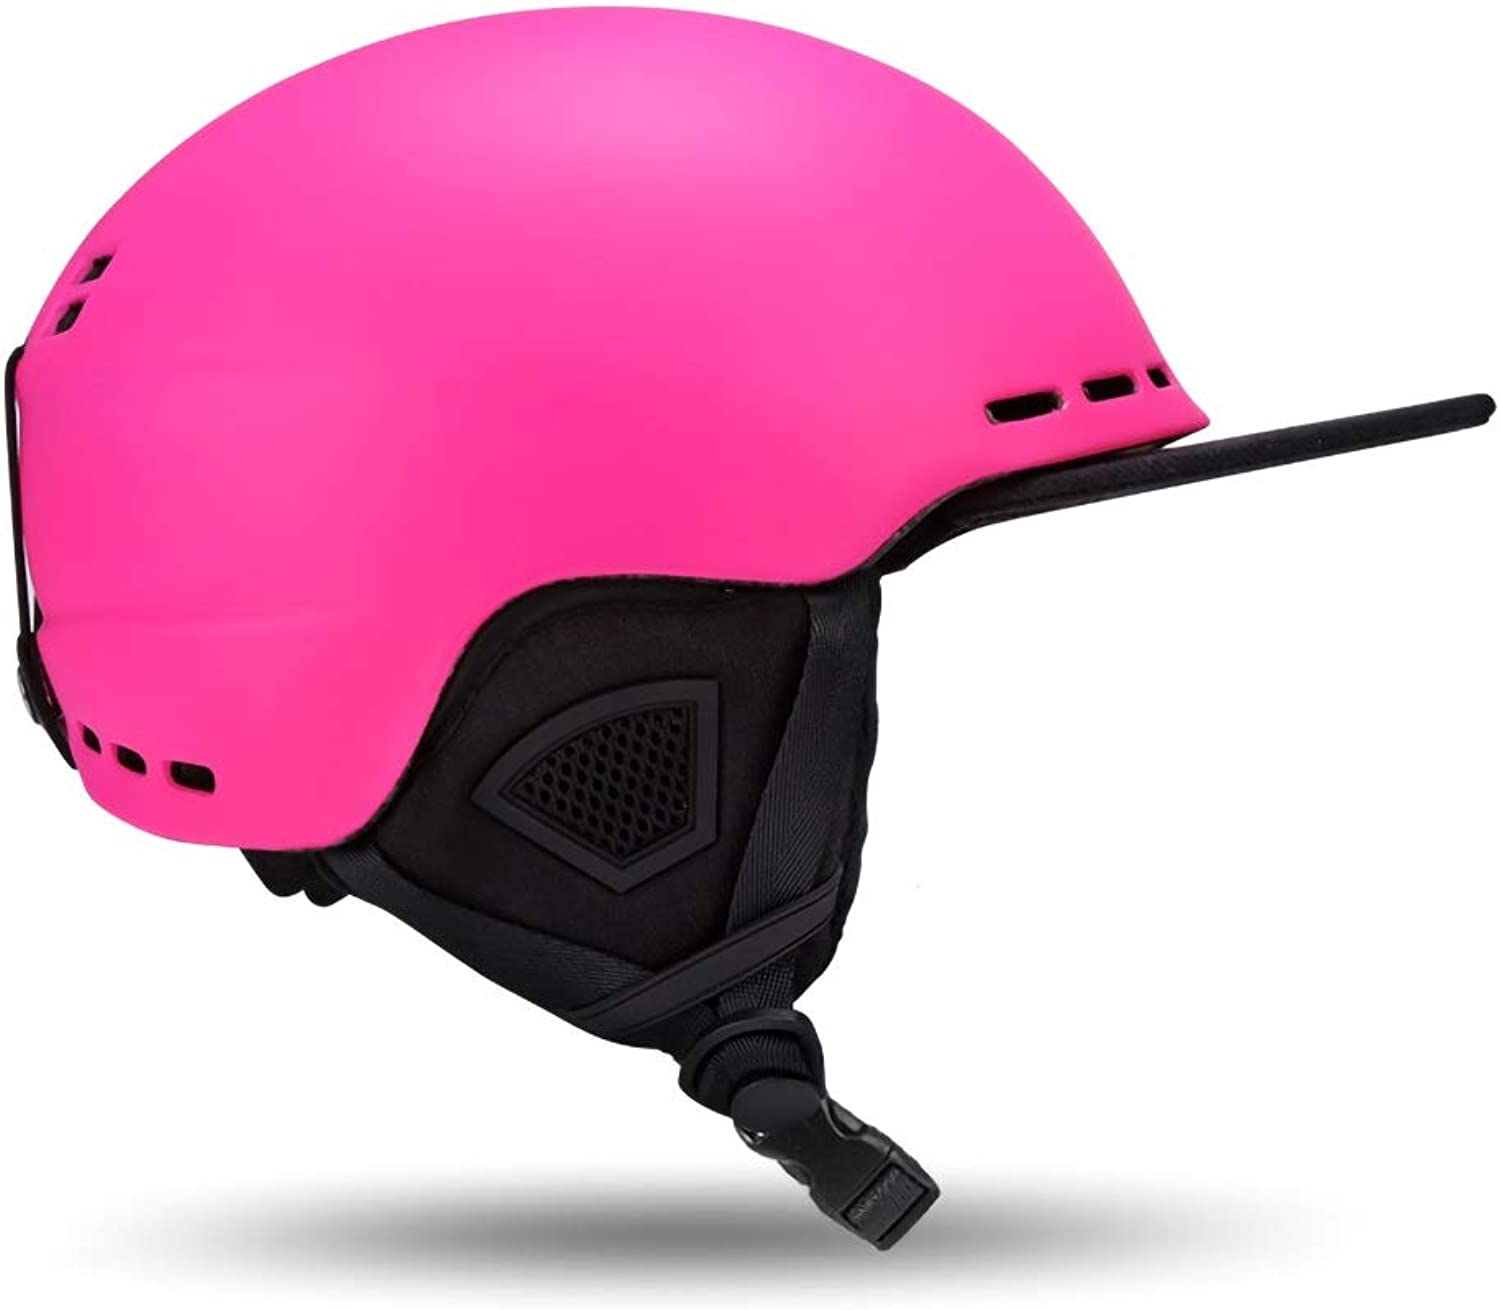 GaoMiTA Safety Adjustable Kids Bicycle Helmet, for Cycling, Skating, Scooting, Skiing(2223 inch)